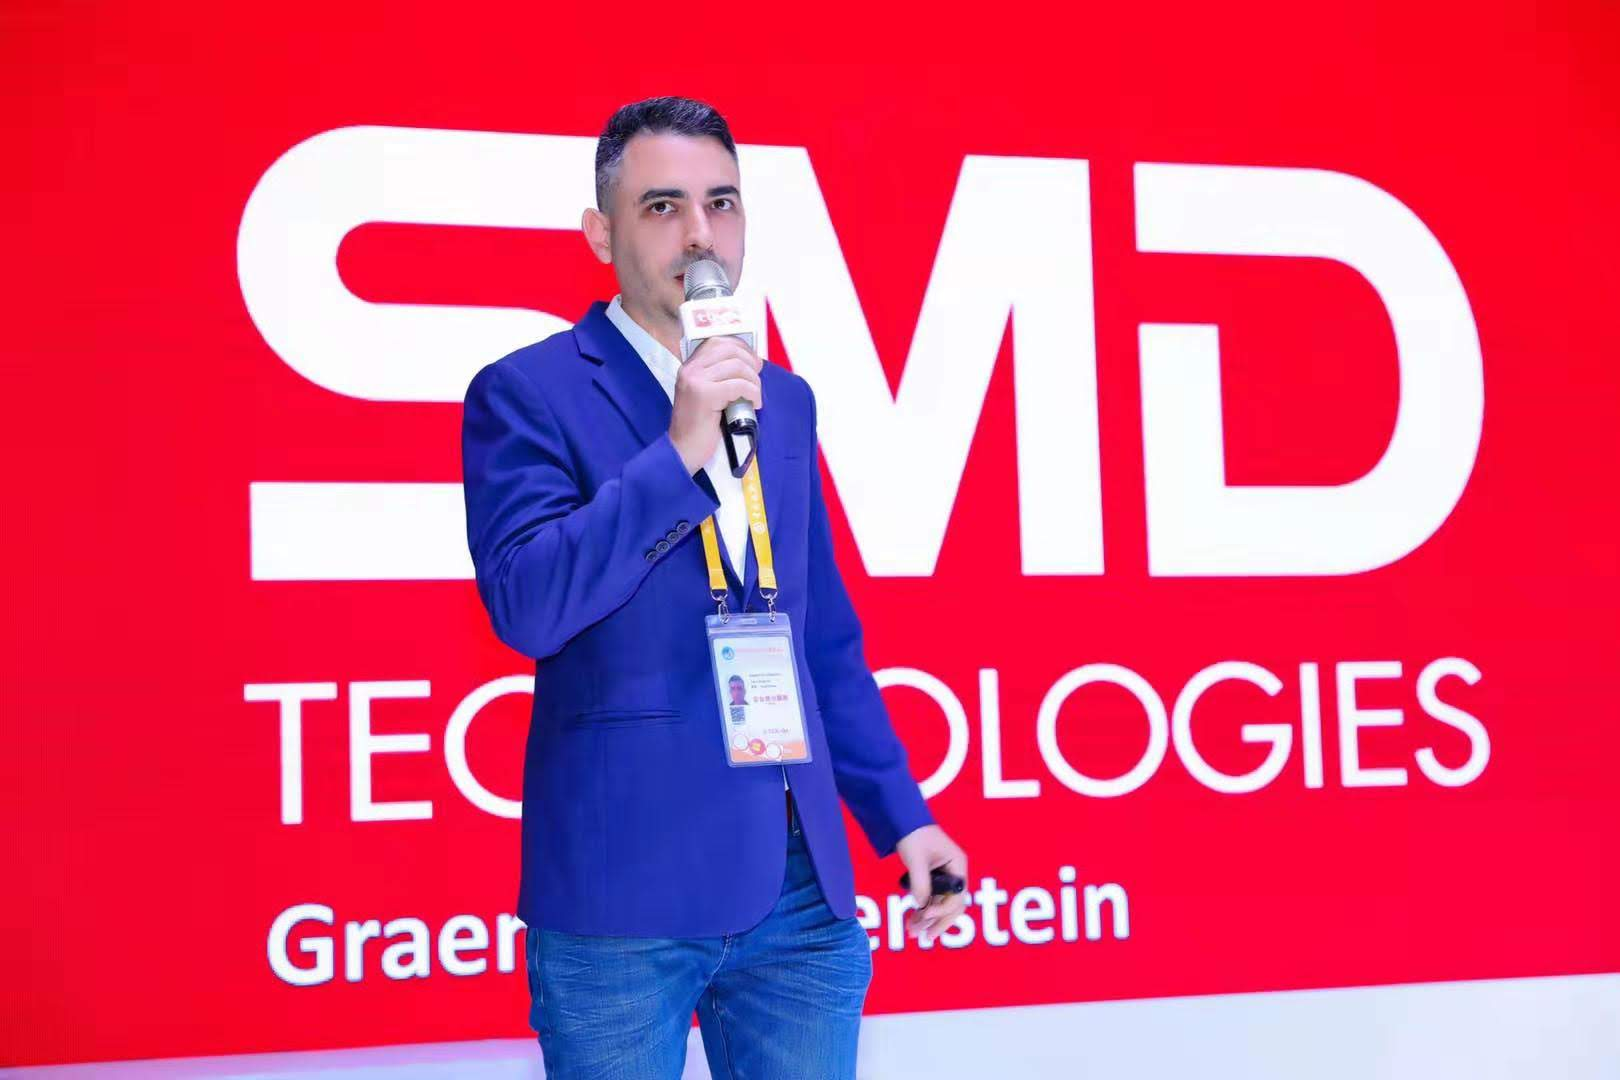 China General Manager of SMD Technologies: Graeme Rubenstein